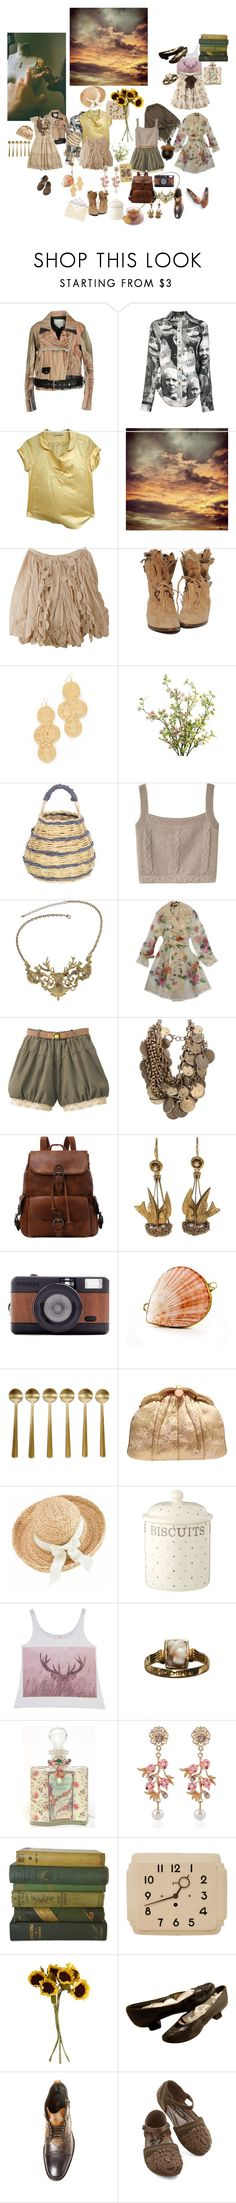 """Happy New Year!"" by amanda-anda-panda ❤ liked on Polyvore featuring Villain, Acne Studios, Vivienne Westwood, Sandro, Kenneth Jay Lane, Pier 1 Imports, Antonio Marras, Christian Dior, Opening Ceremony and Wunderkind"